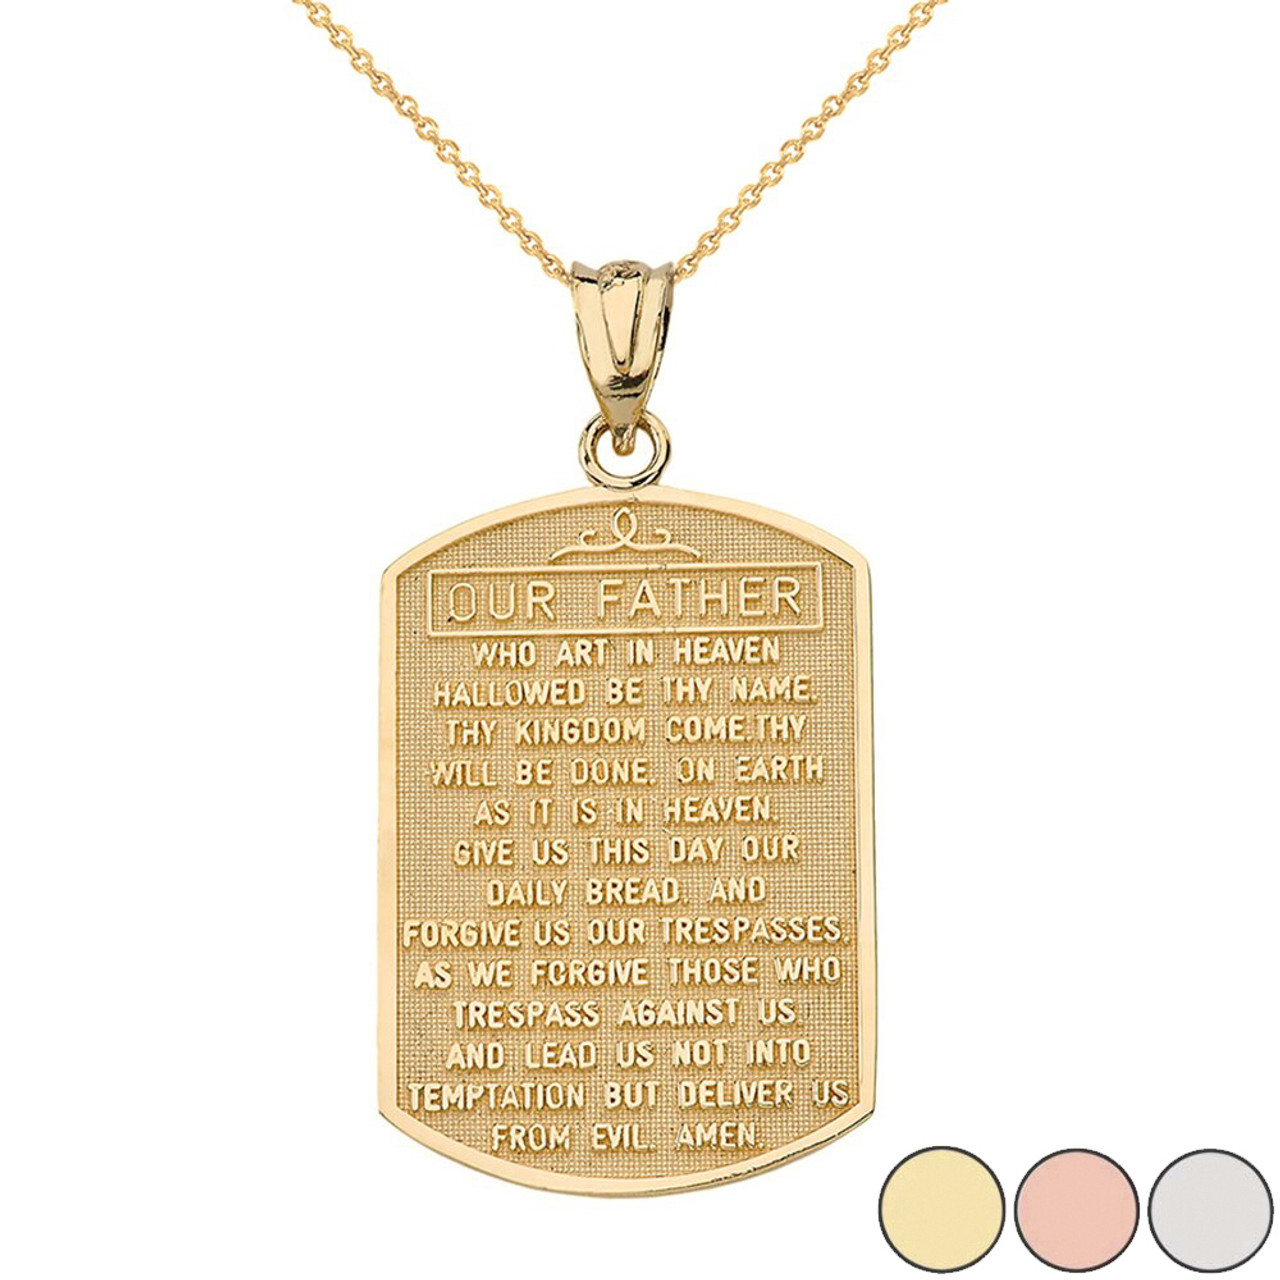 Solid 14k Yellow Gold The Lord/'s Our Father Prayer Crucifix Pendant Necklace